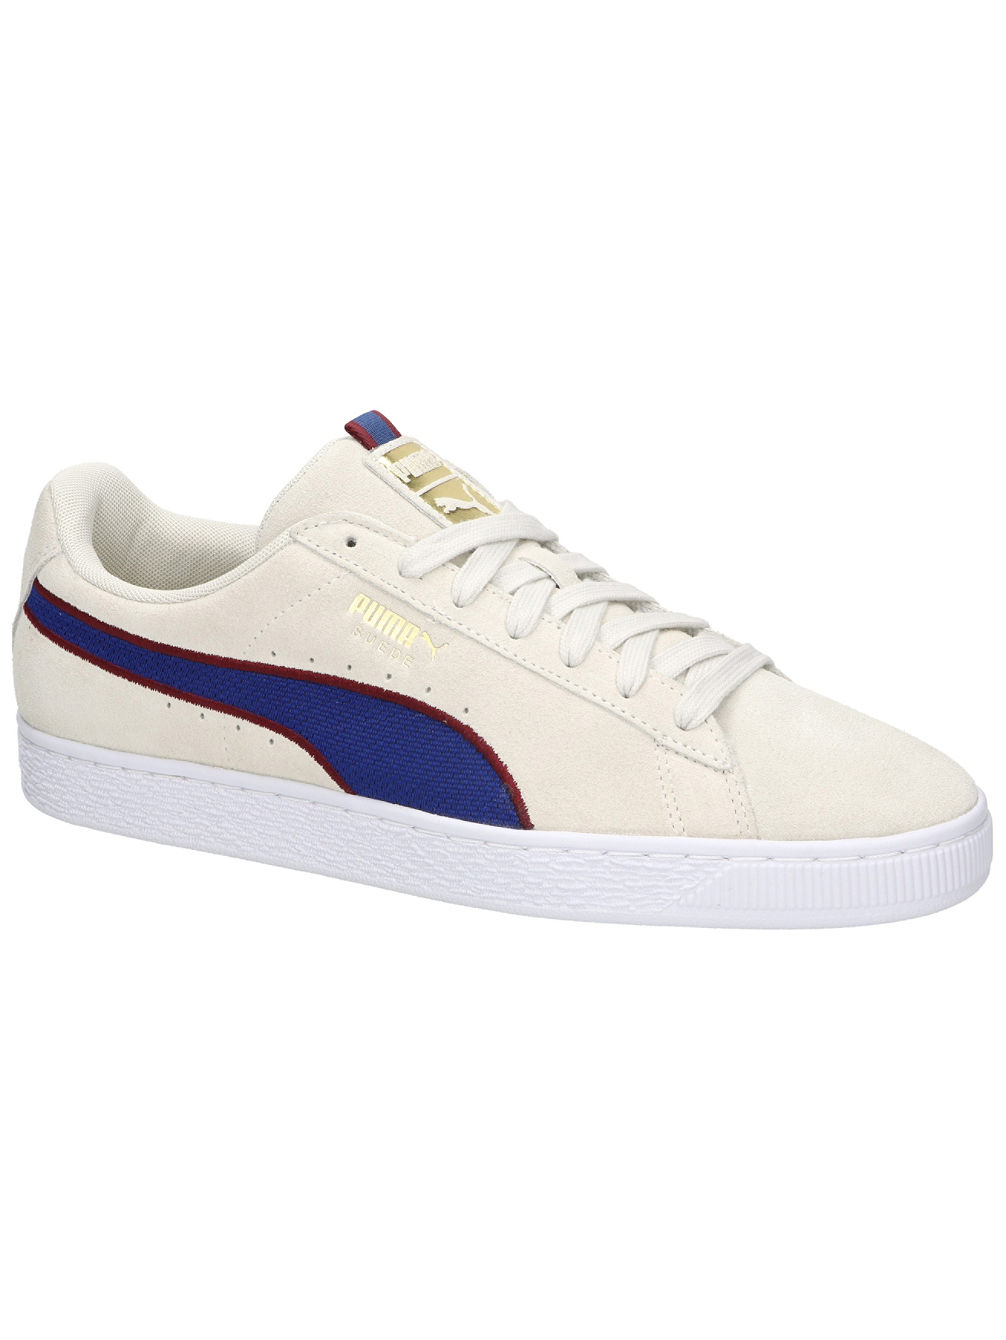 a816fbbf71 Buy Puma Suede Classic Sport Stripes Sneakers online at Blue Tomato